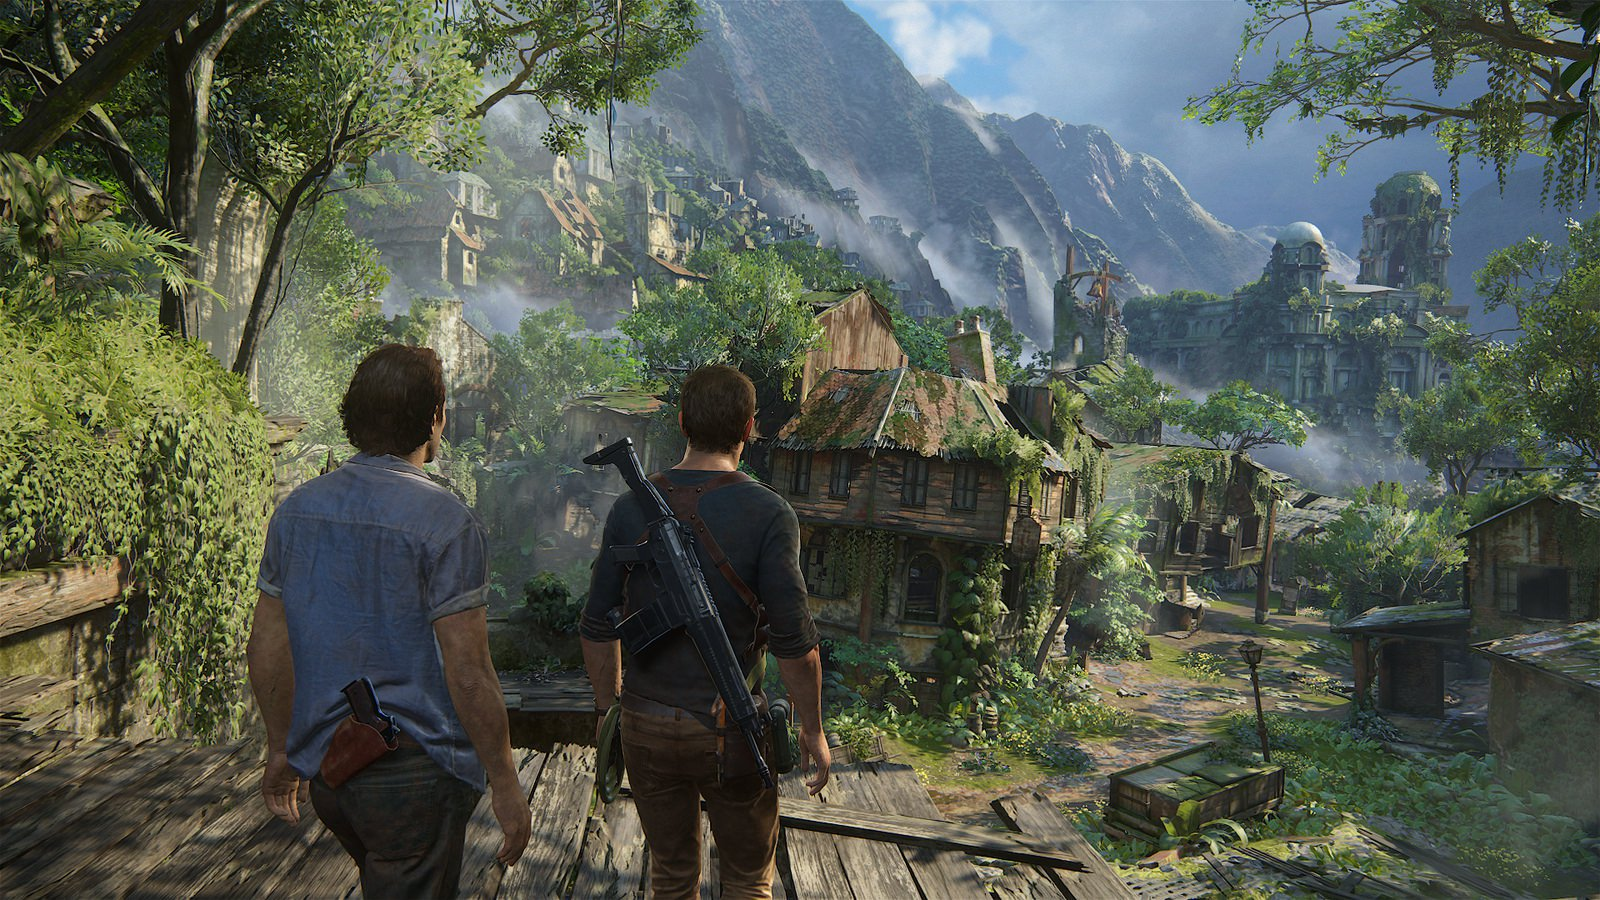 Uncharted 4 A Thief's End Image